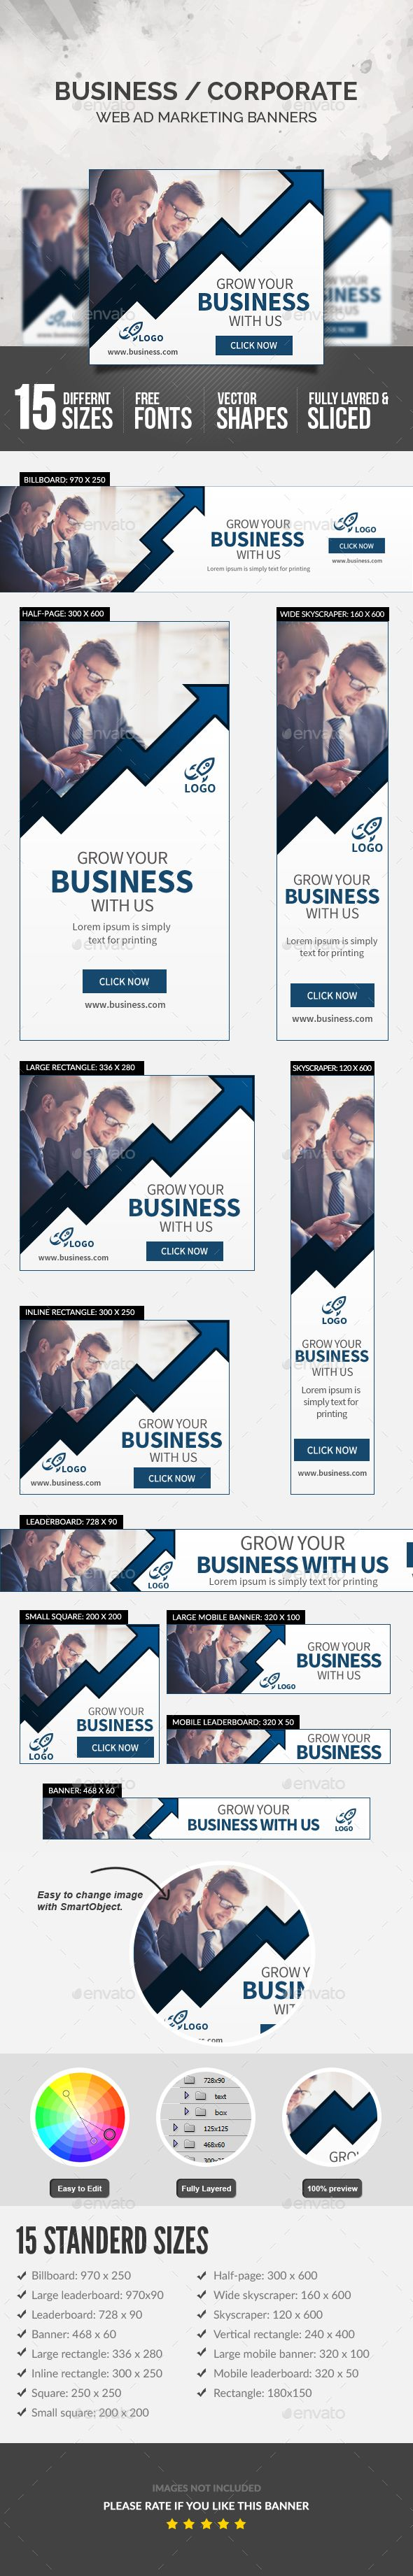 Business Banners — Photoshop PSD #banners #sales • Available here → https://graphicriver.net/item/business-banners/18303553?ref=pxcr